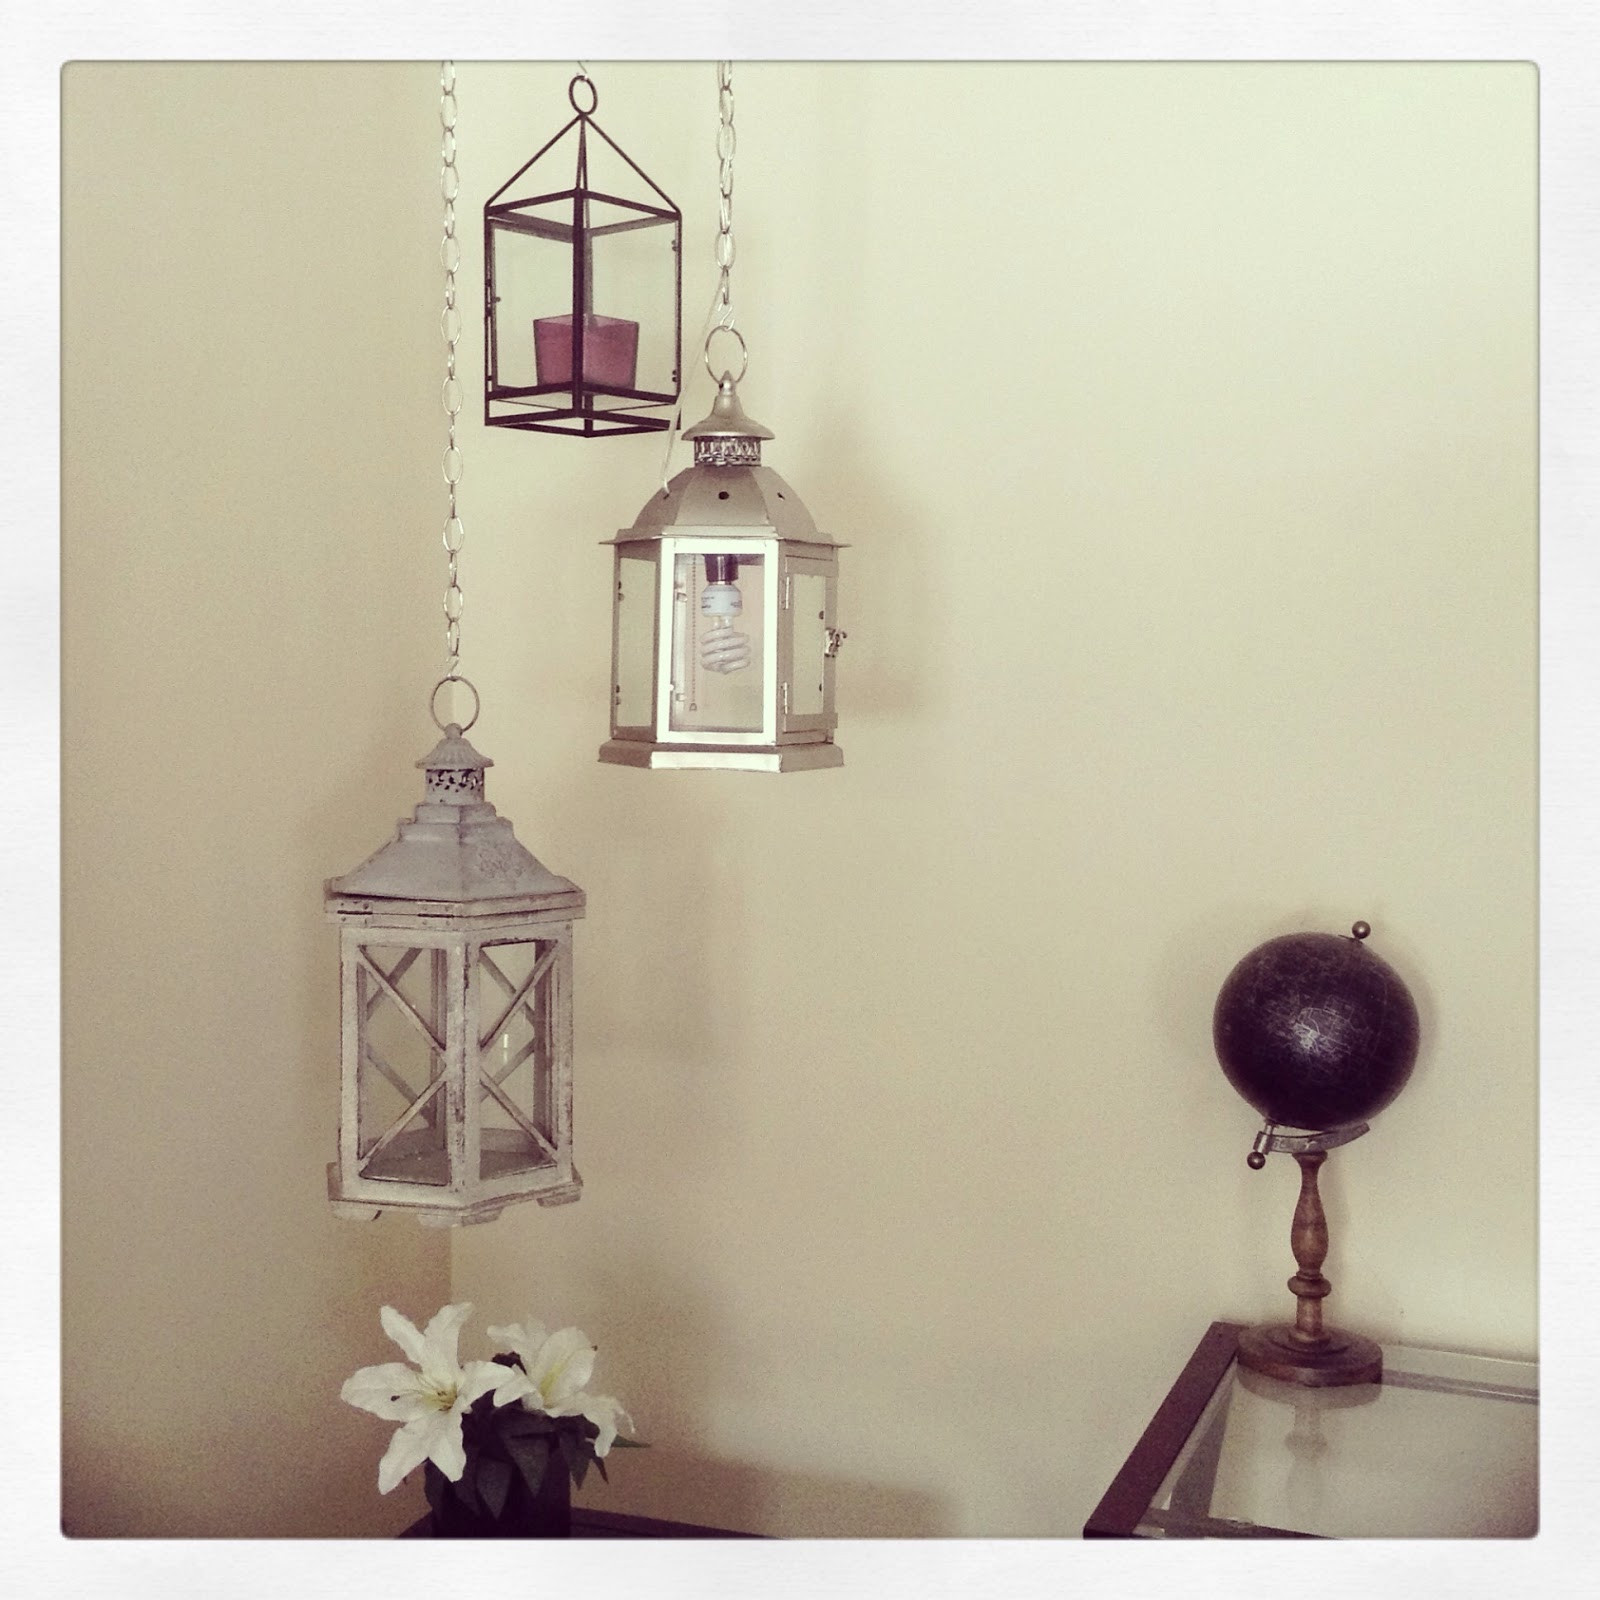 Best ideas about DIY Hanging Lamp . Save or Pin M4rilynJ0y DIY Hanging Pendant Lamp Now.